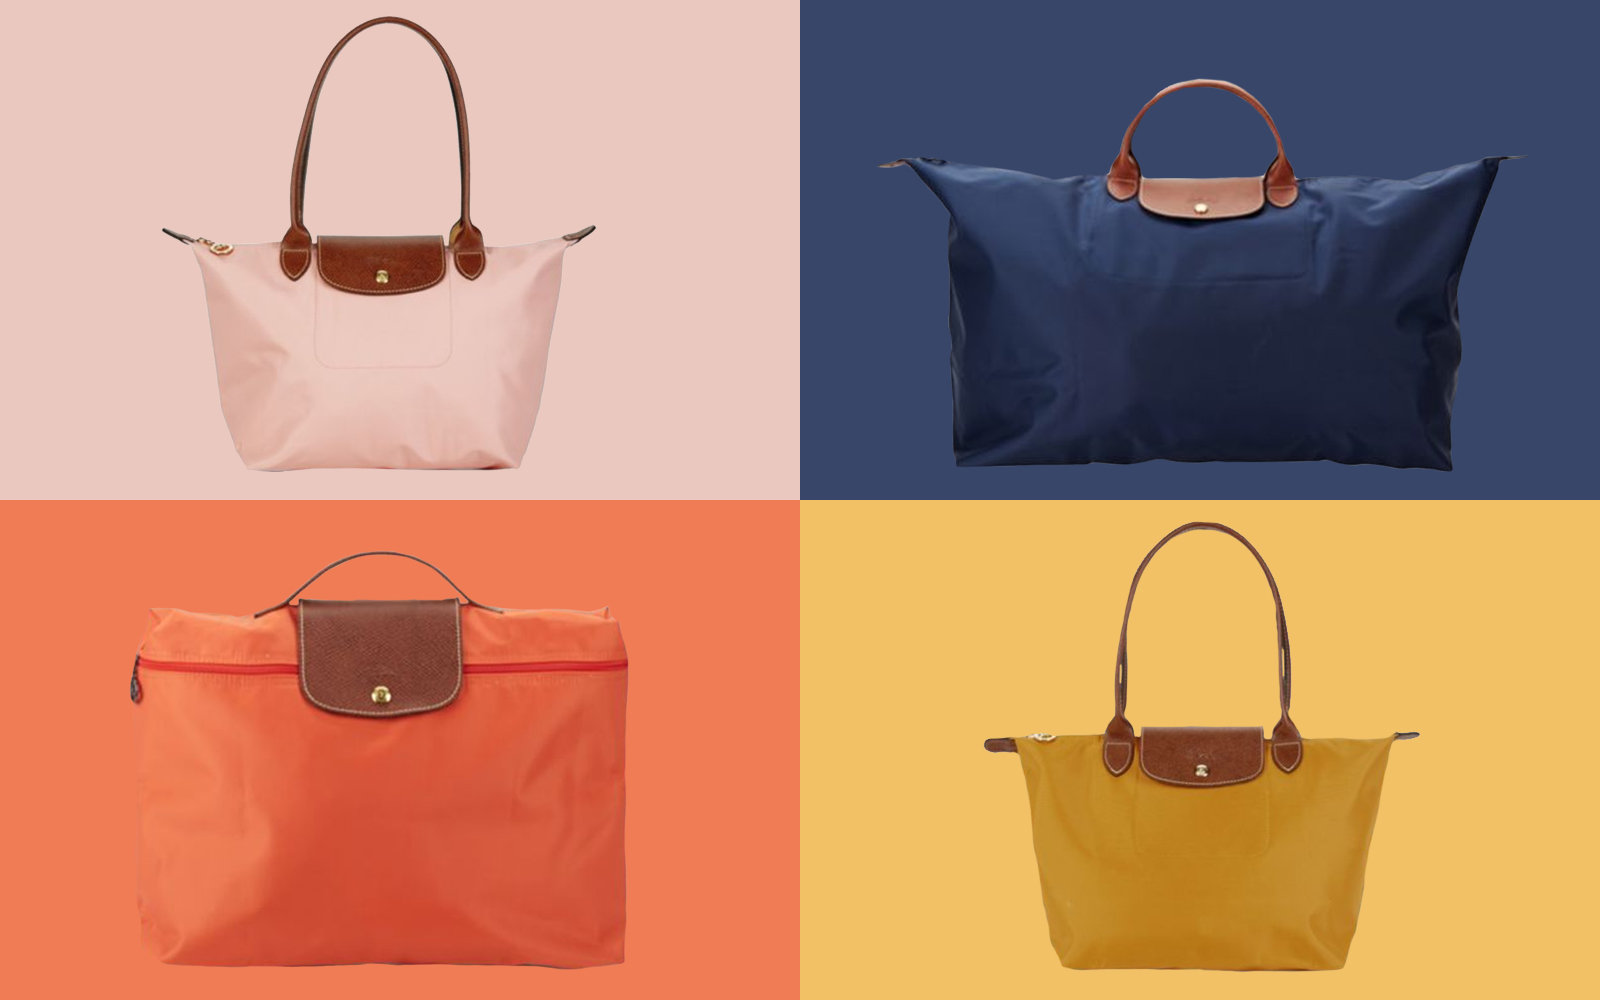 Longchamp Bags on Sale at Saks Off 5th